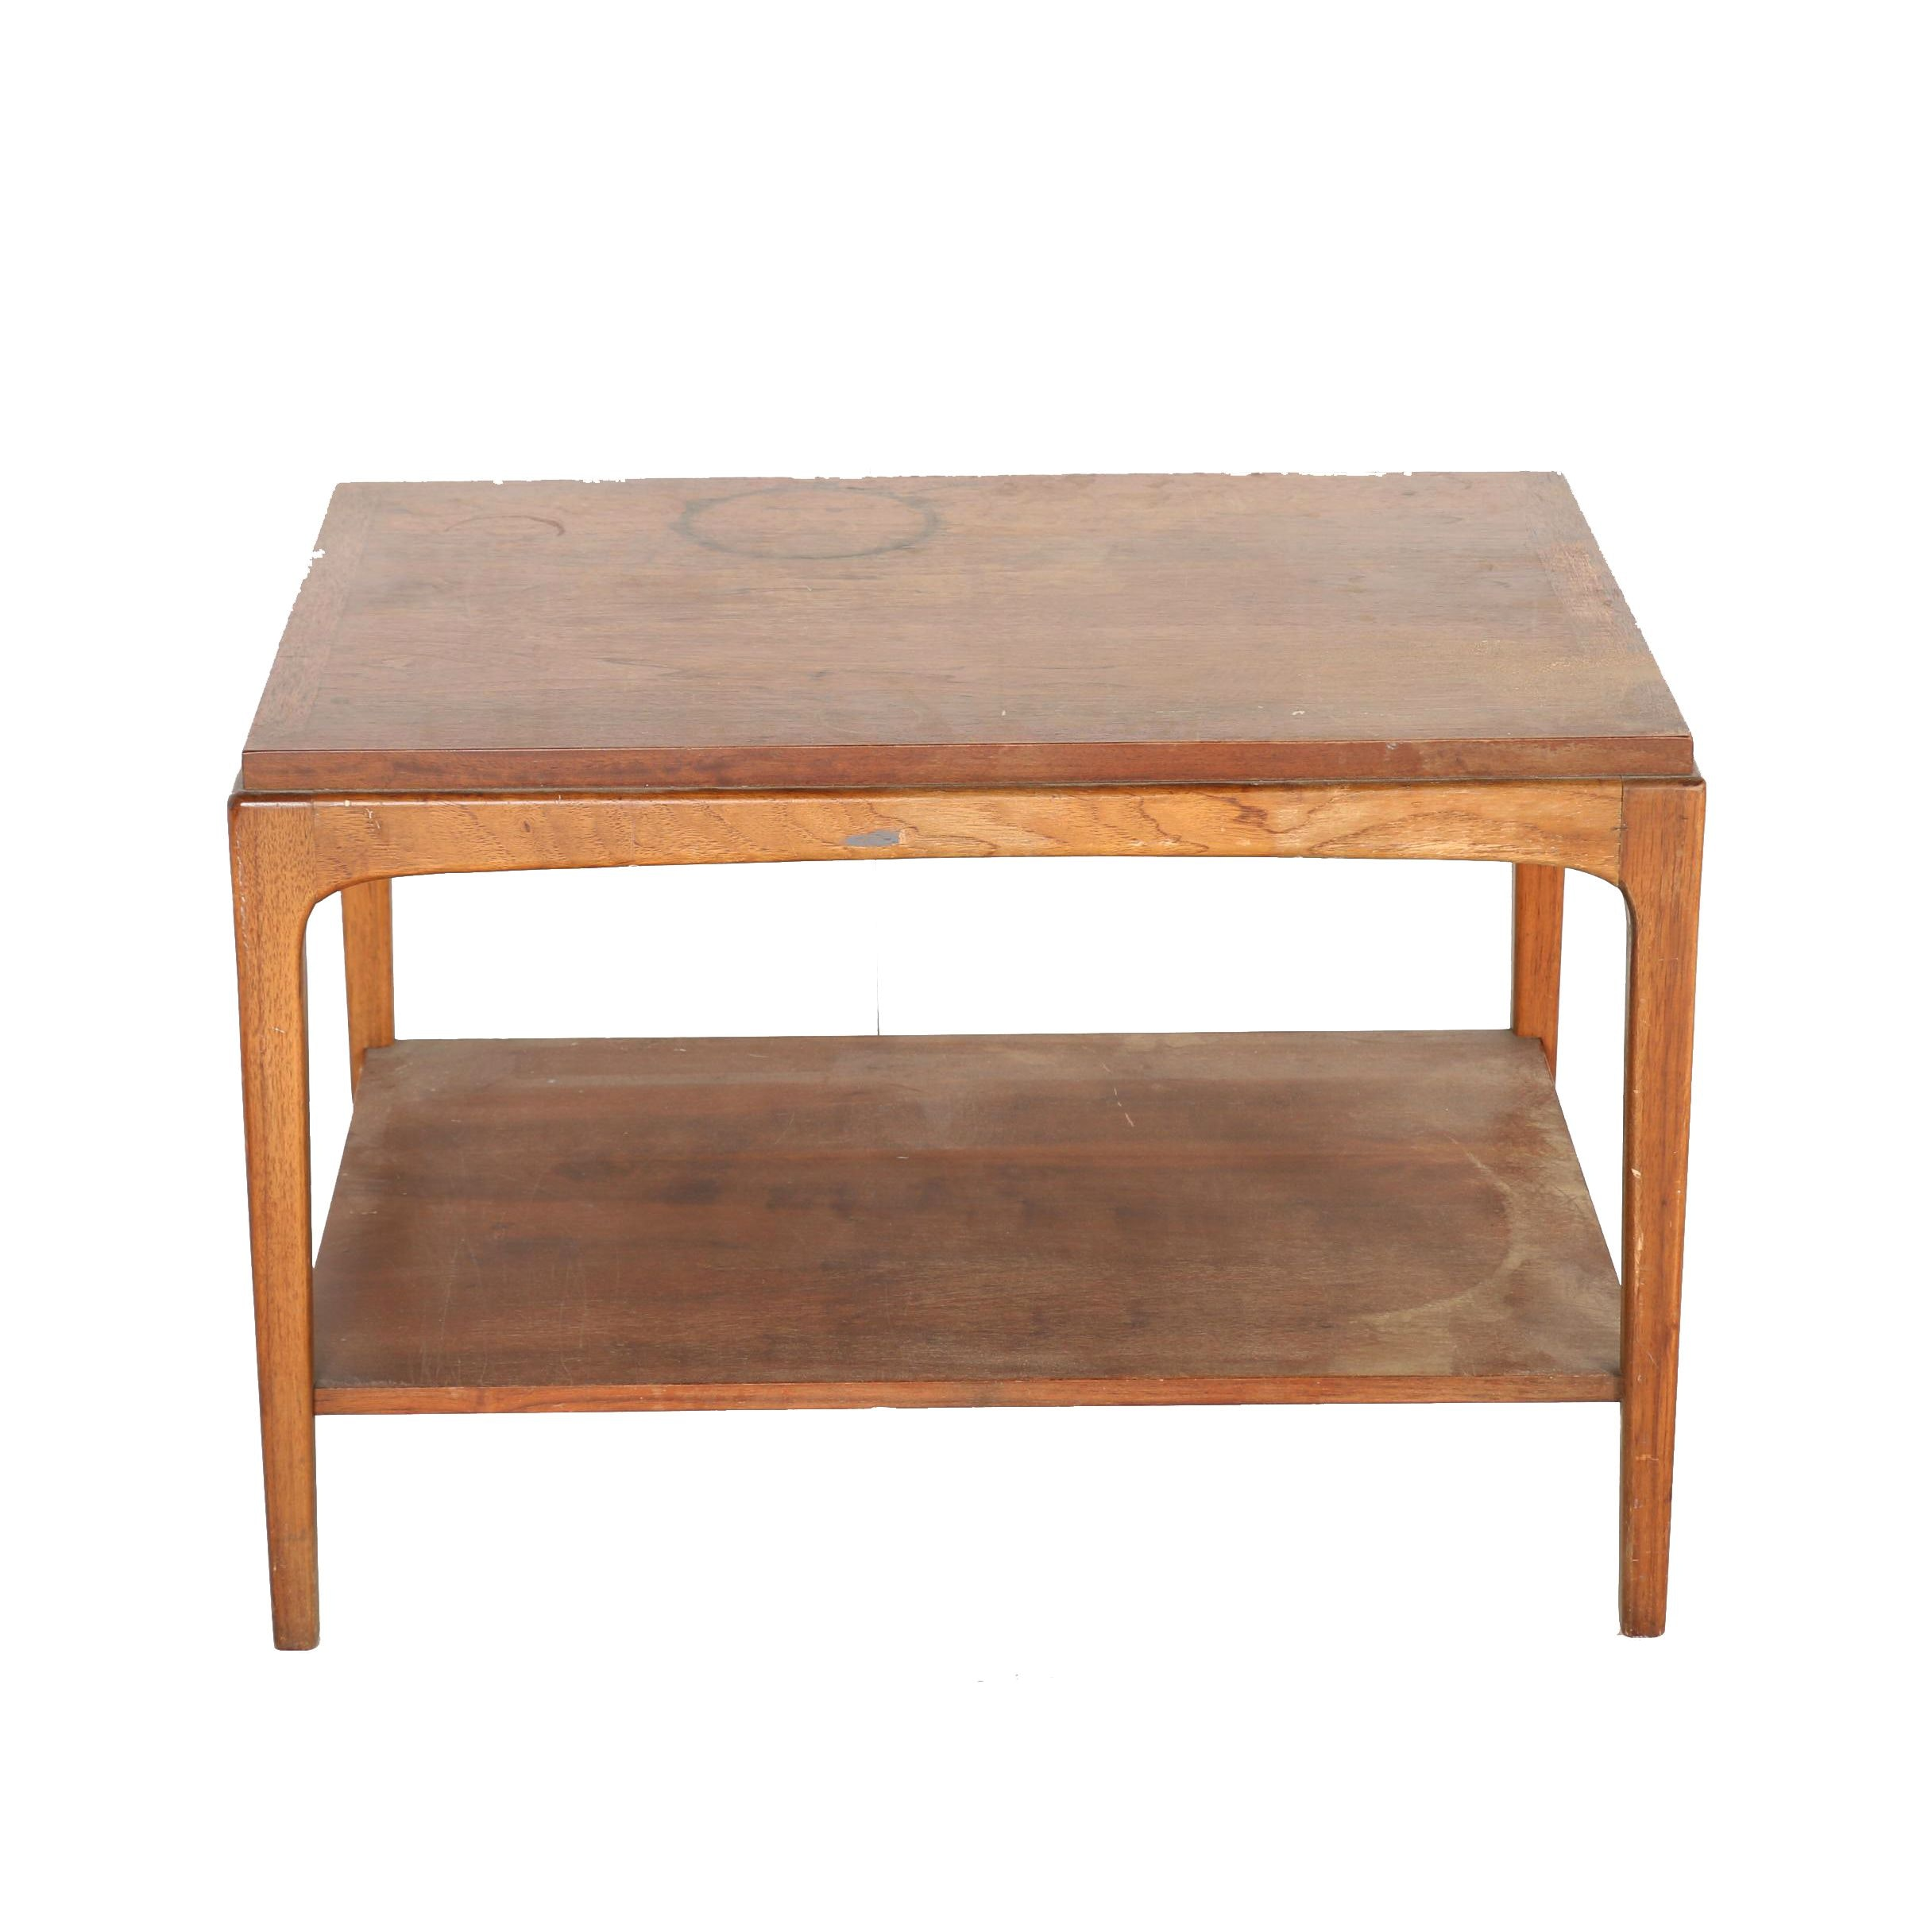 Circa 1960s Lane Furniture Coffee Table